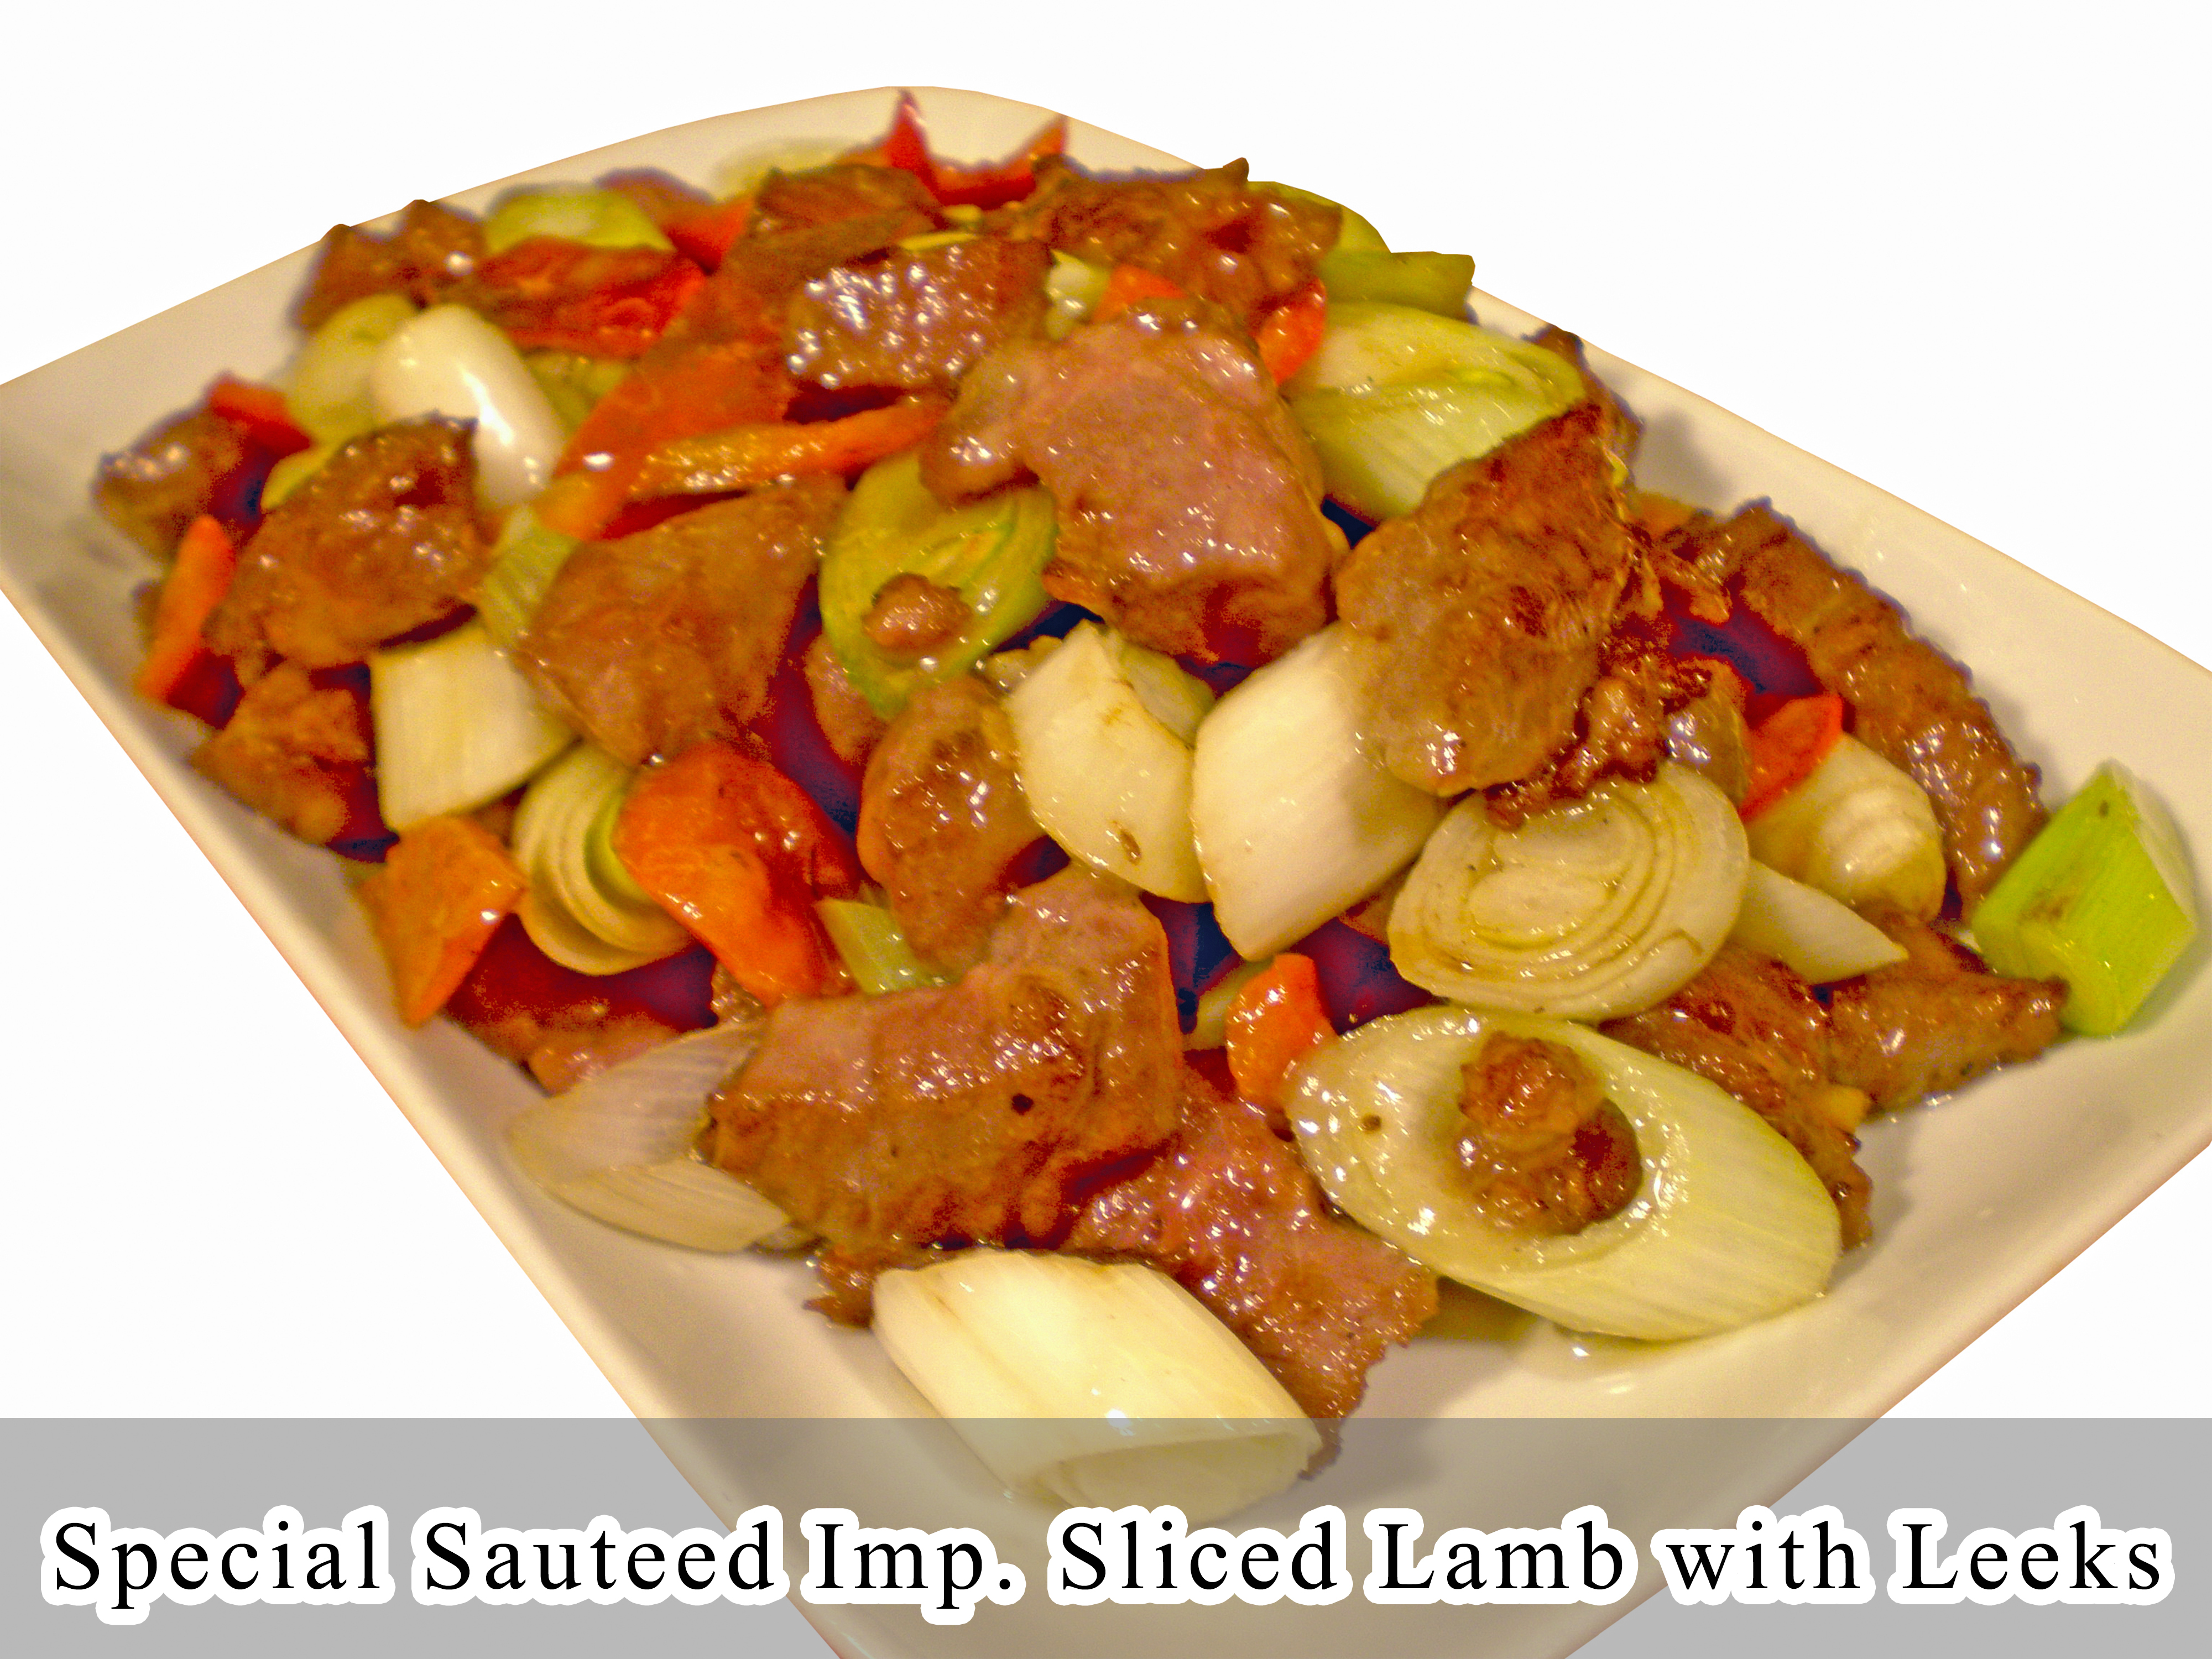 Special Sauteed Imp. Sliced Lamb with Leeks